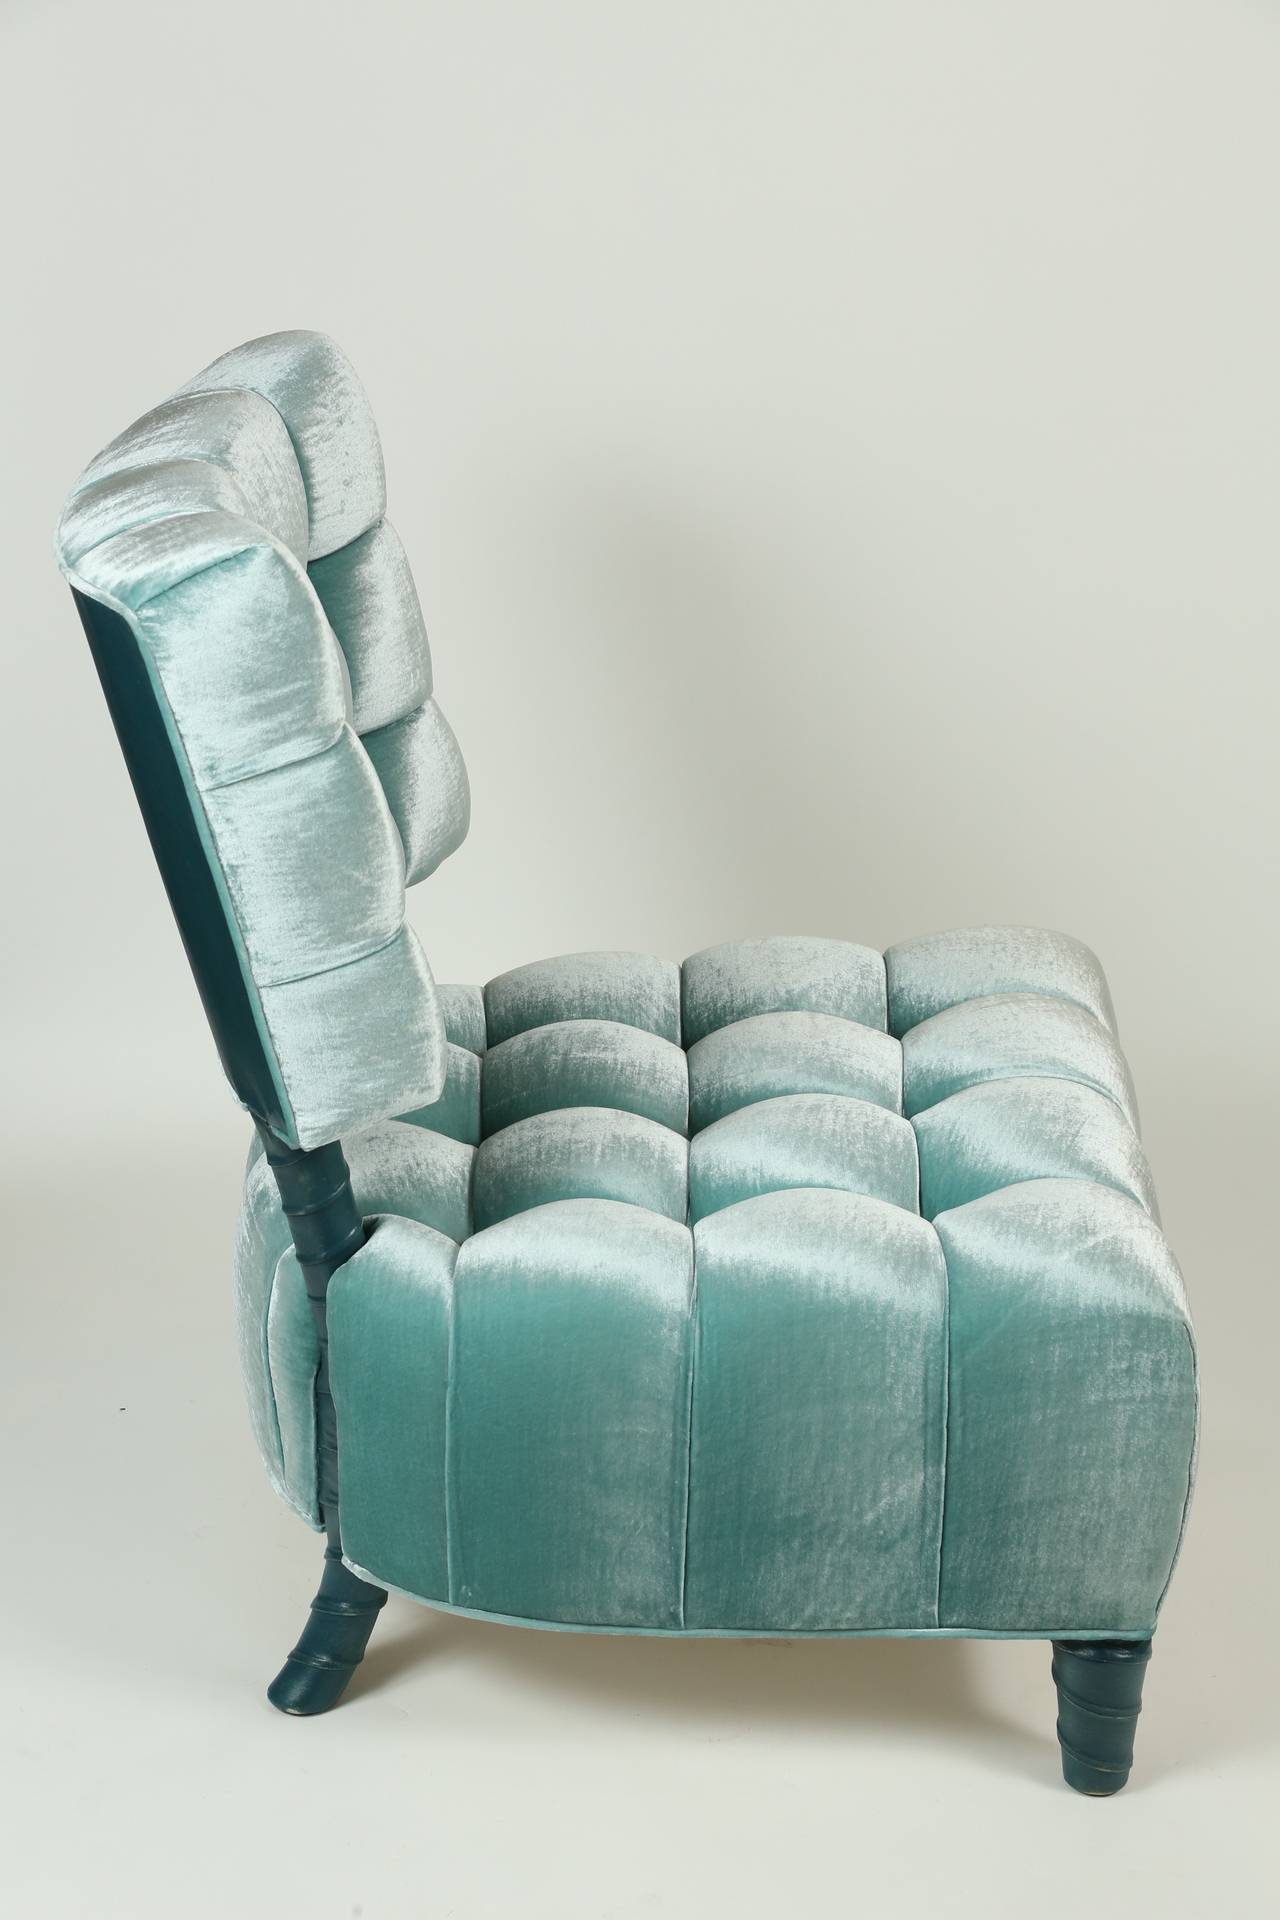 Gorgeous Leather Slipper Chair Offering Stunning Vibes and Comfy